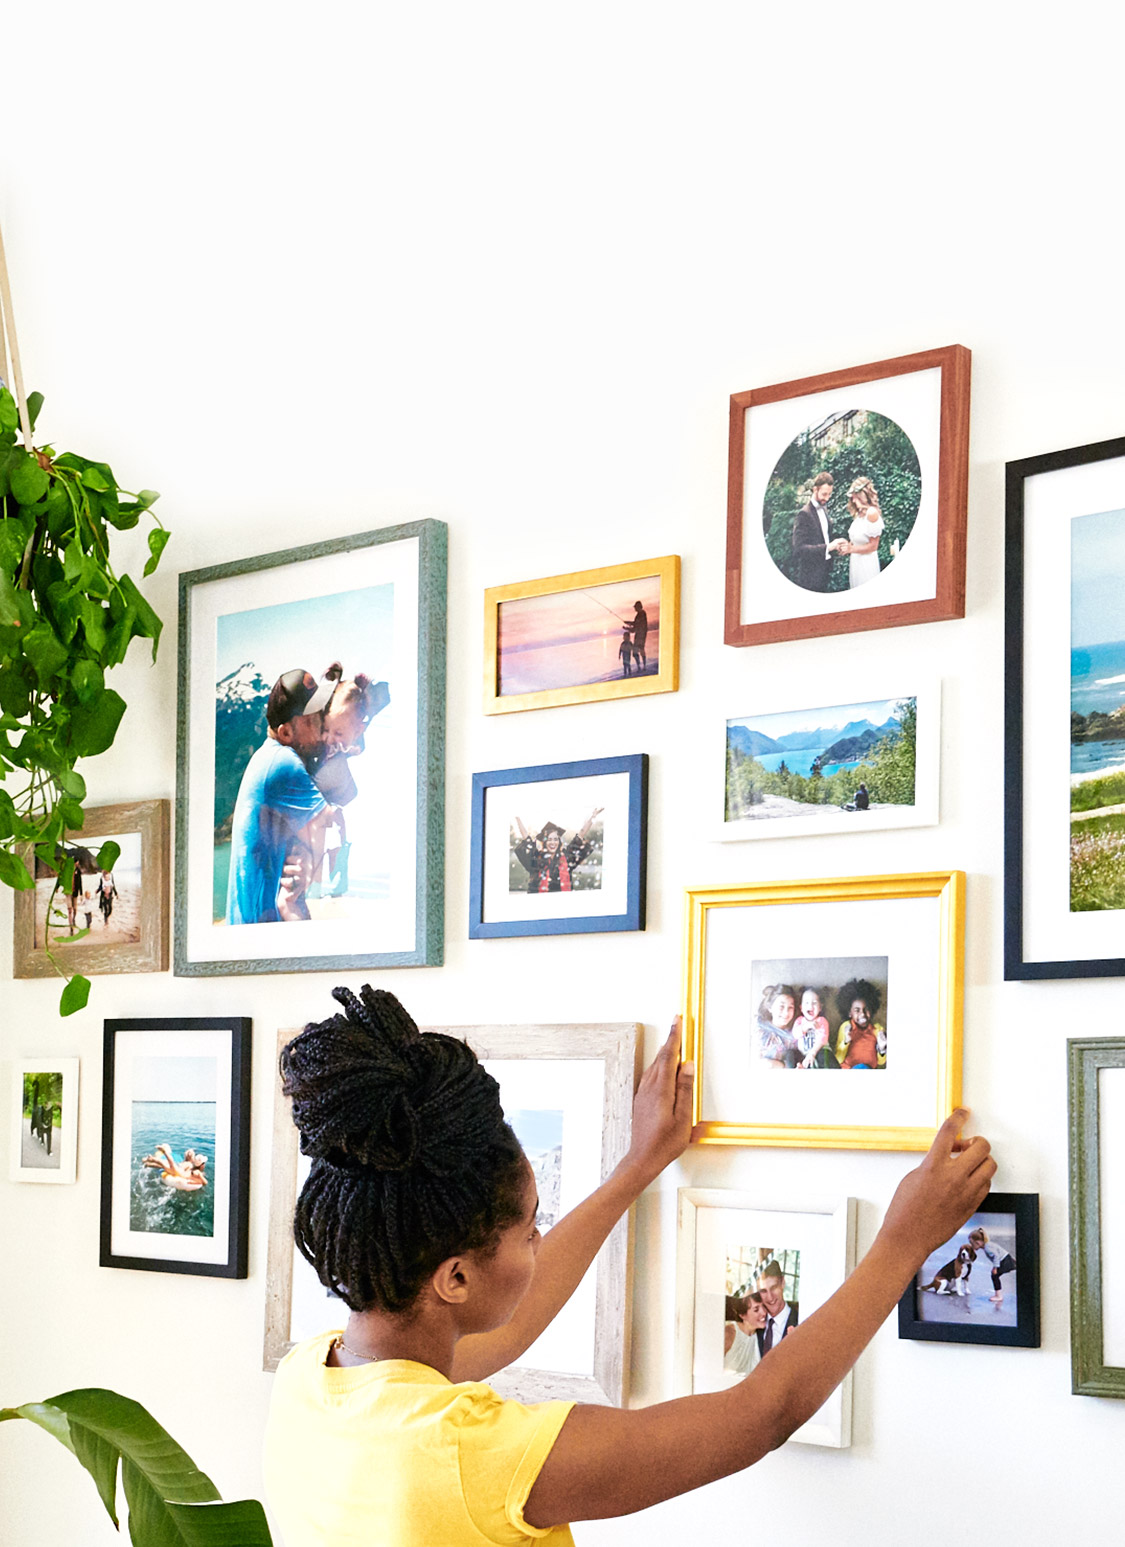 Frame the moments that matter.